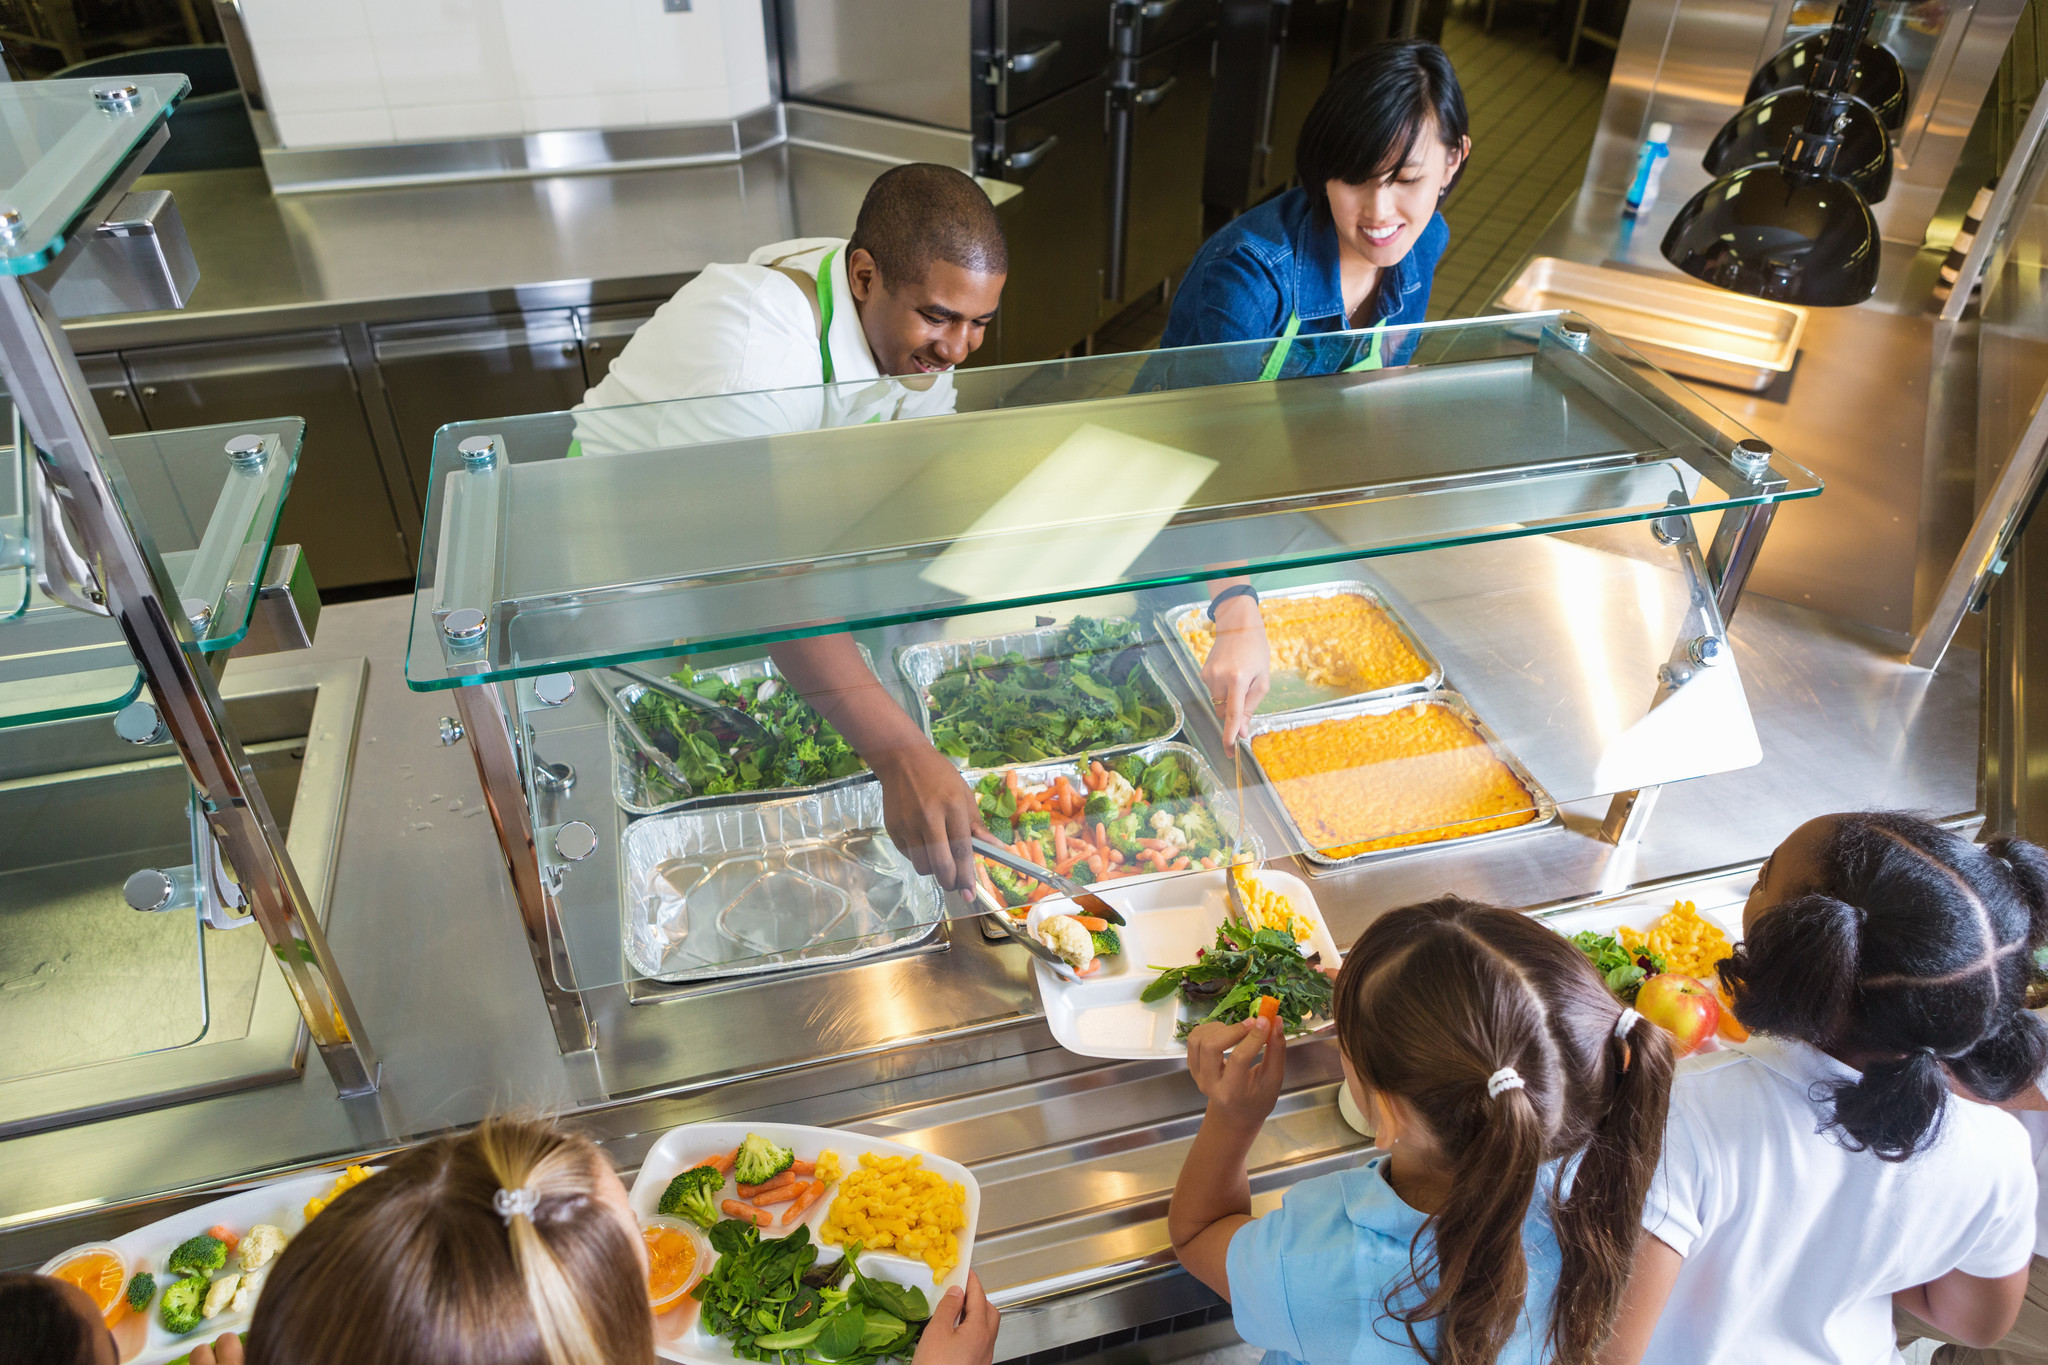 We can serve kids school meals made from scratch